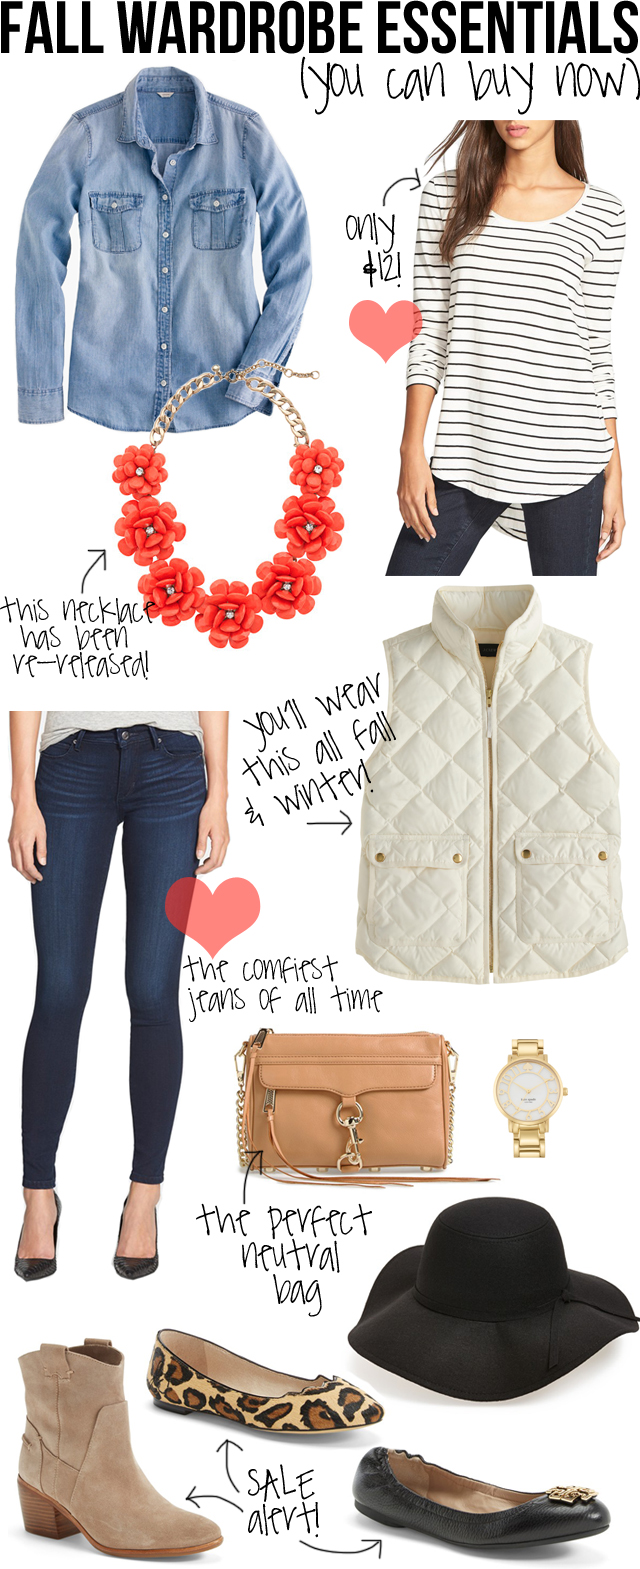 Southern Curls & Pearls: Fall Wardrobe Essentials (You Can ...